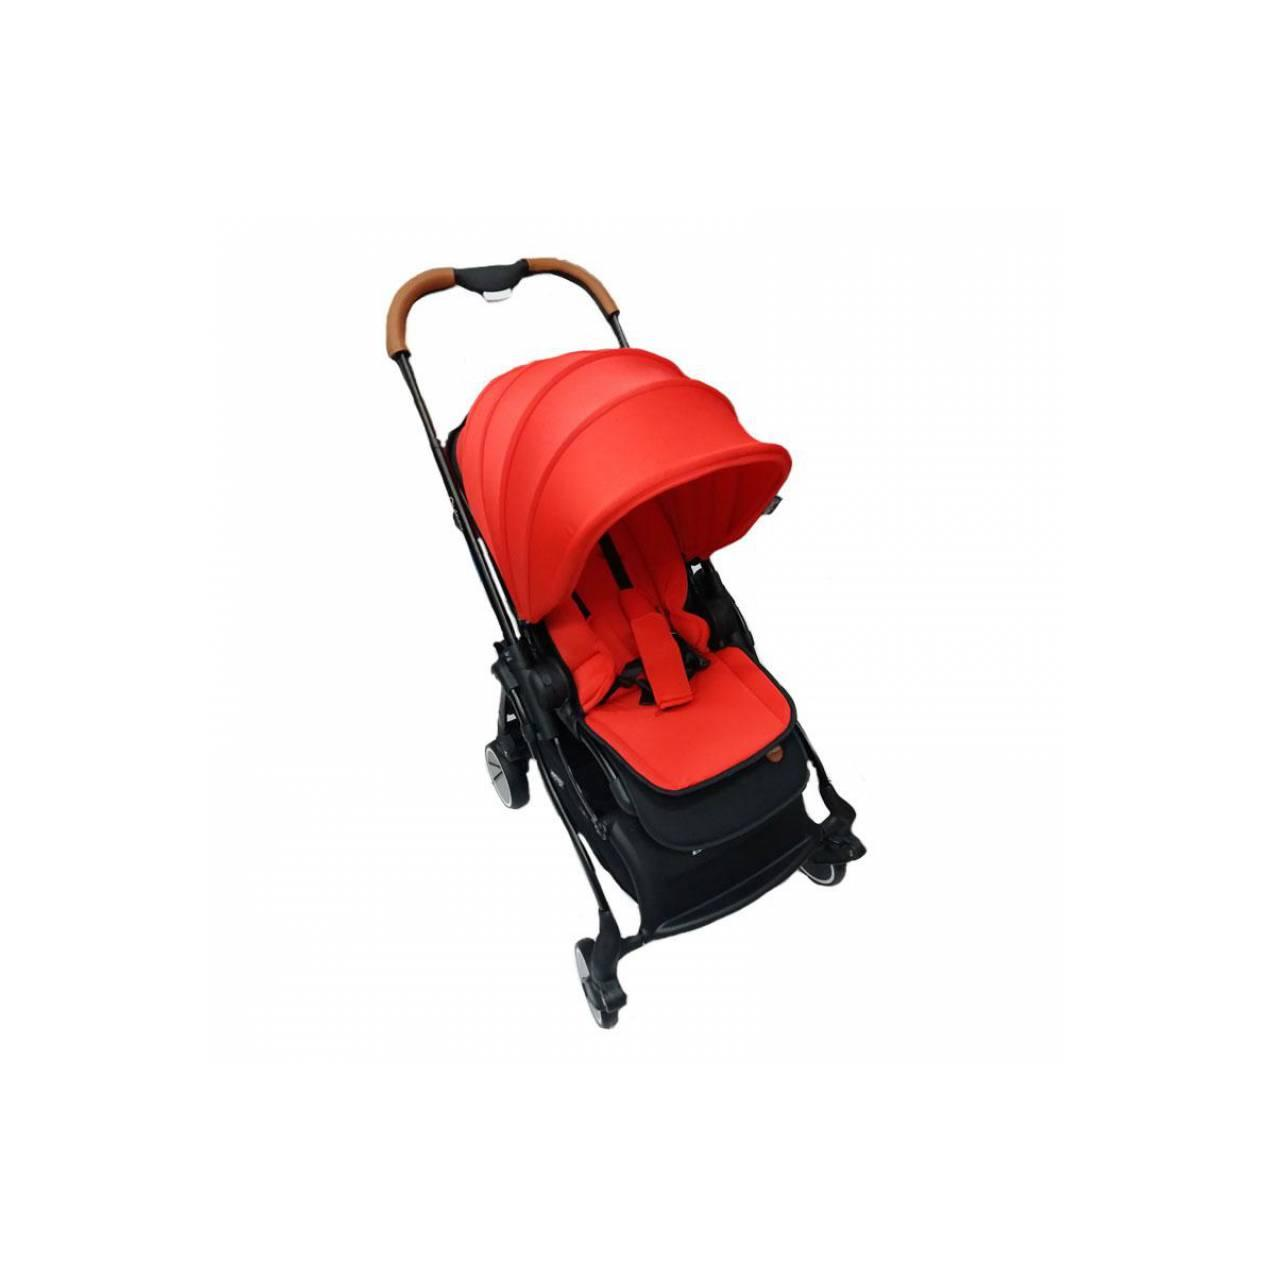 Stroller Cocolatte 140 BNS Series Quincy Red Ruby